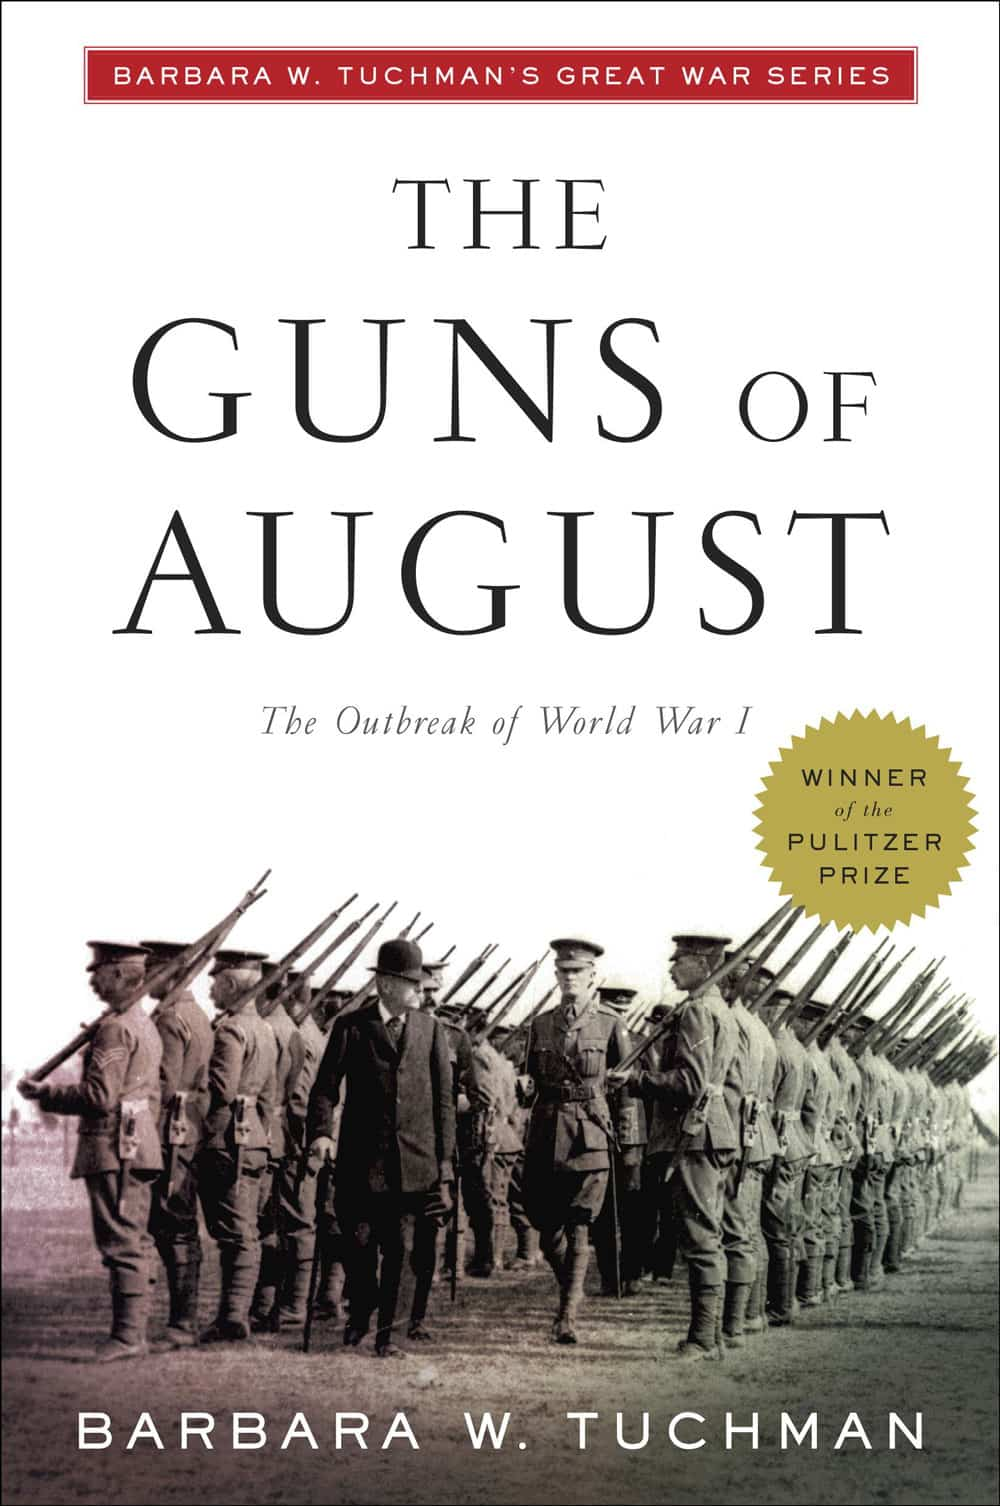 The cover of The Guns of August